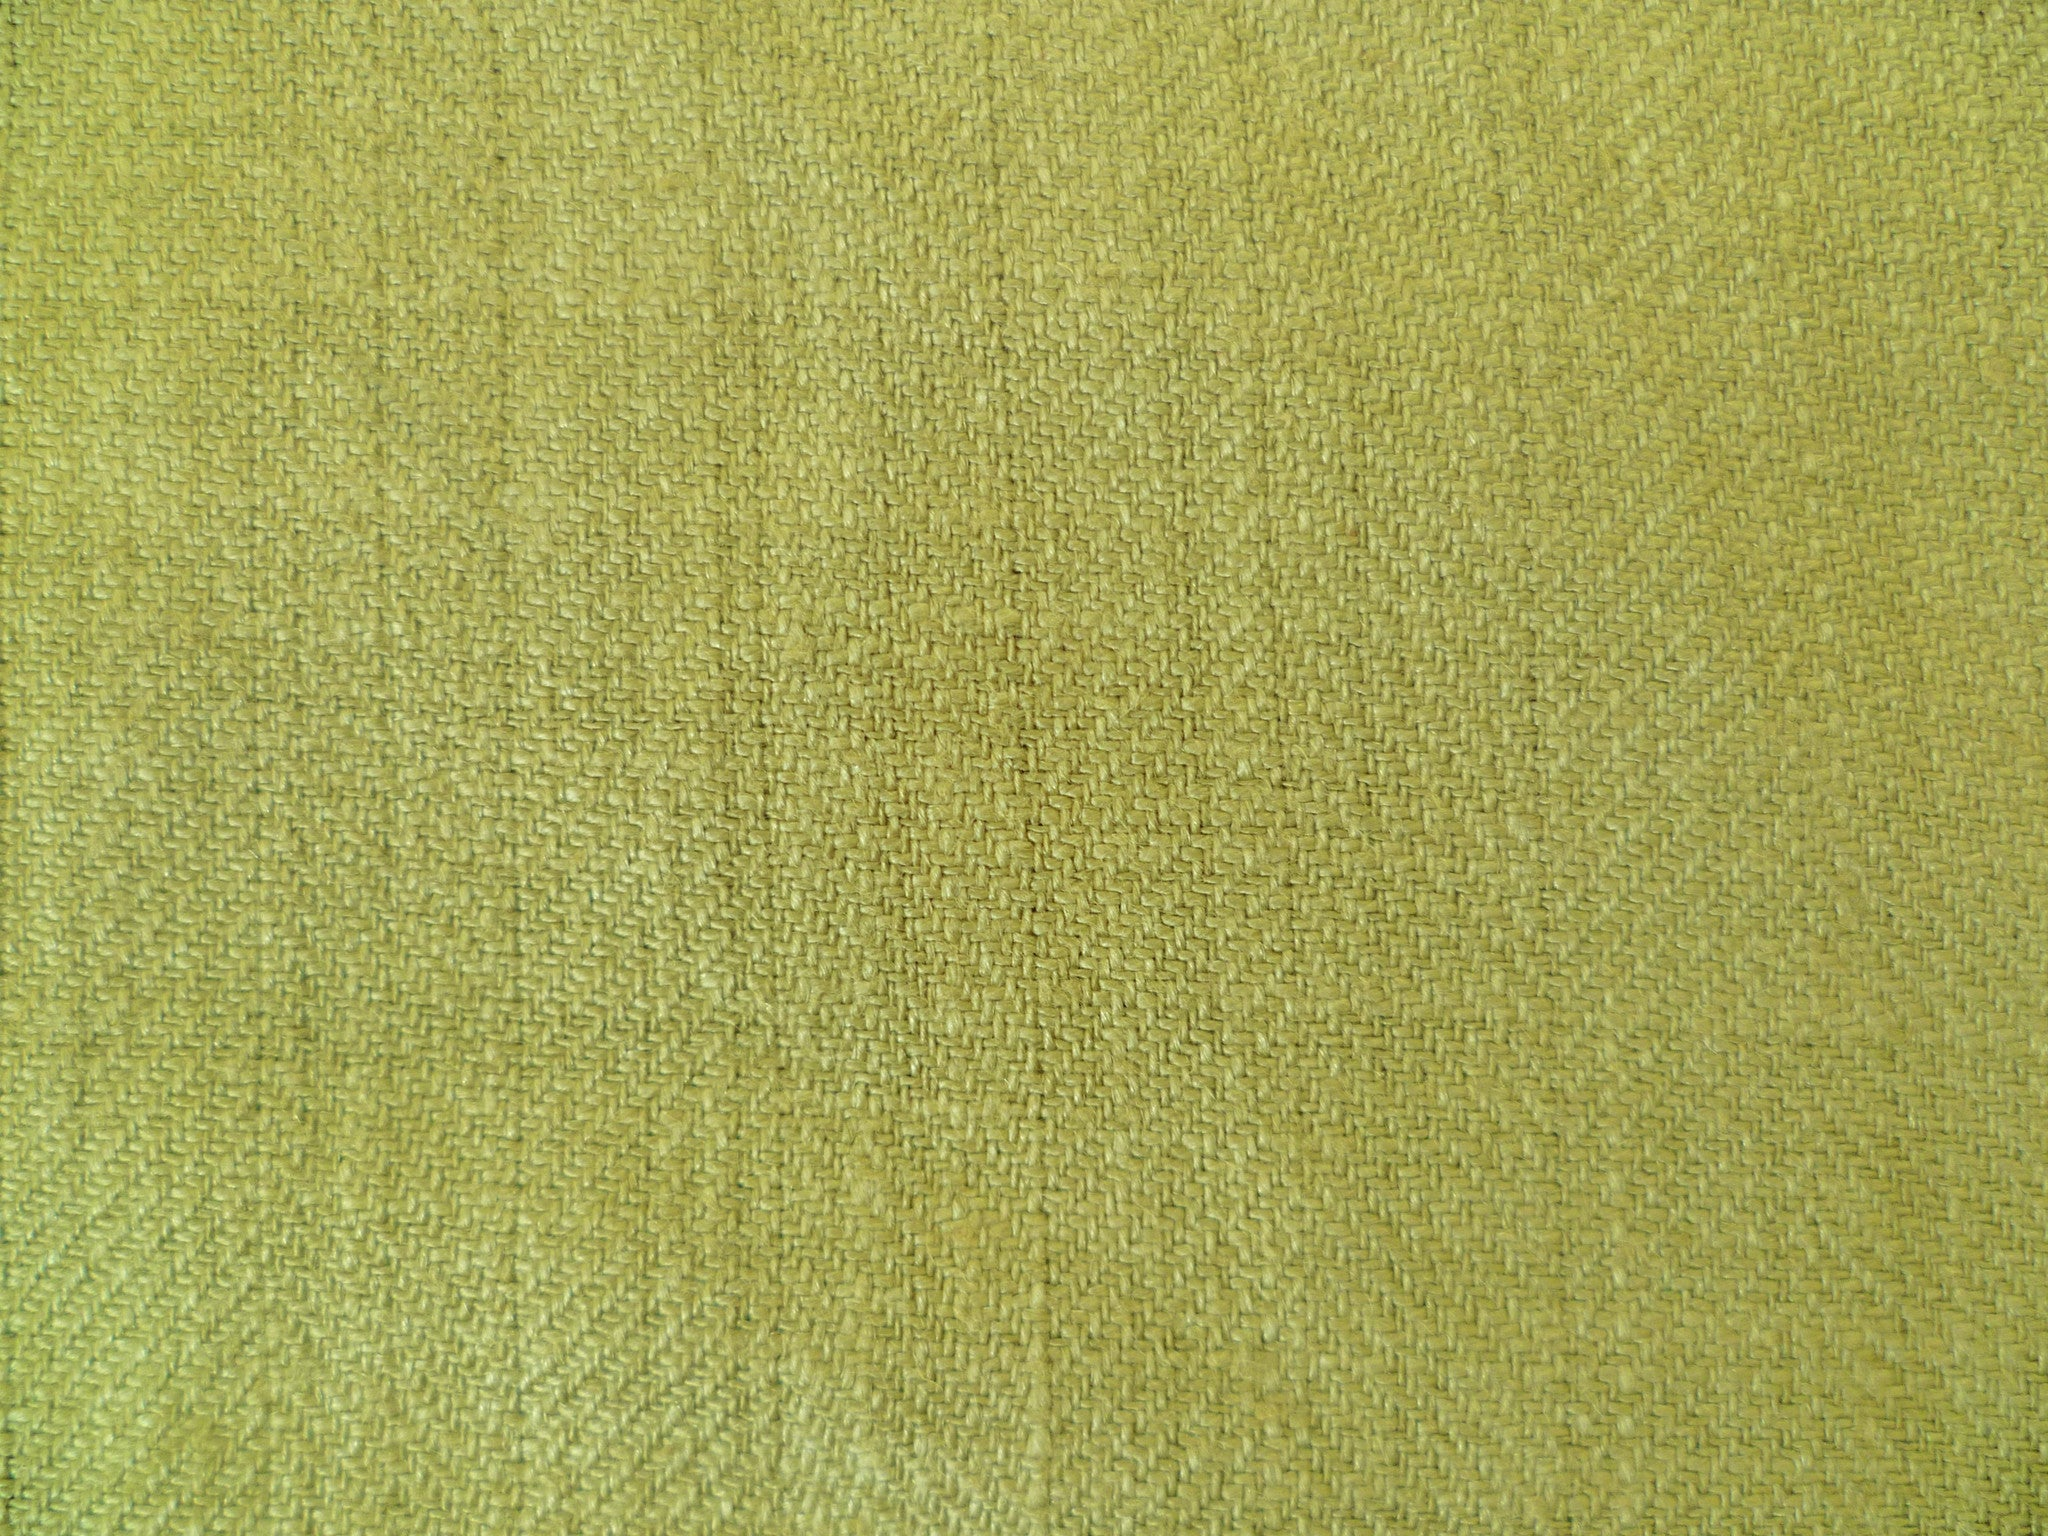 Cotton-Linen-Silk 4-5 oz